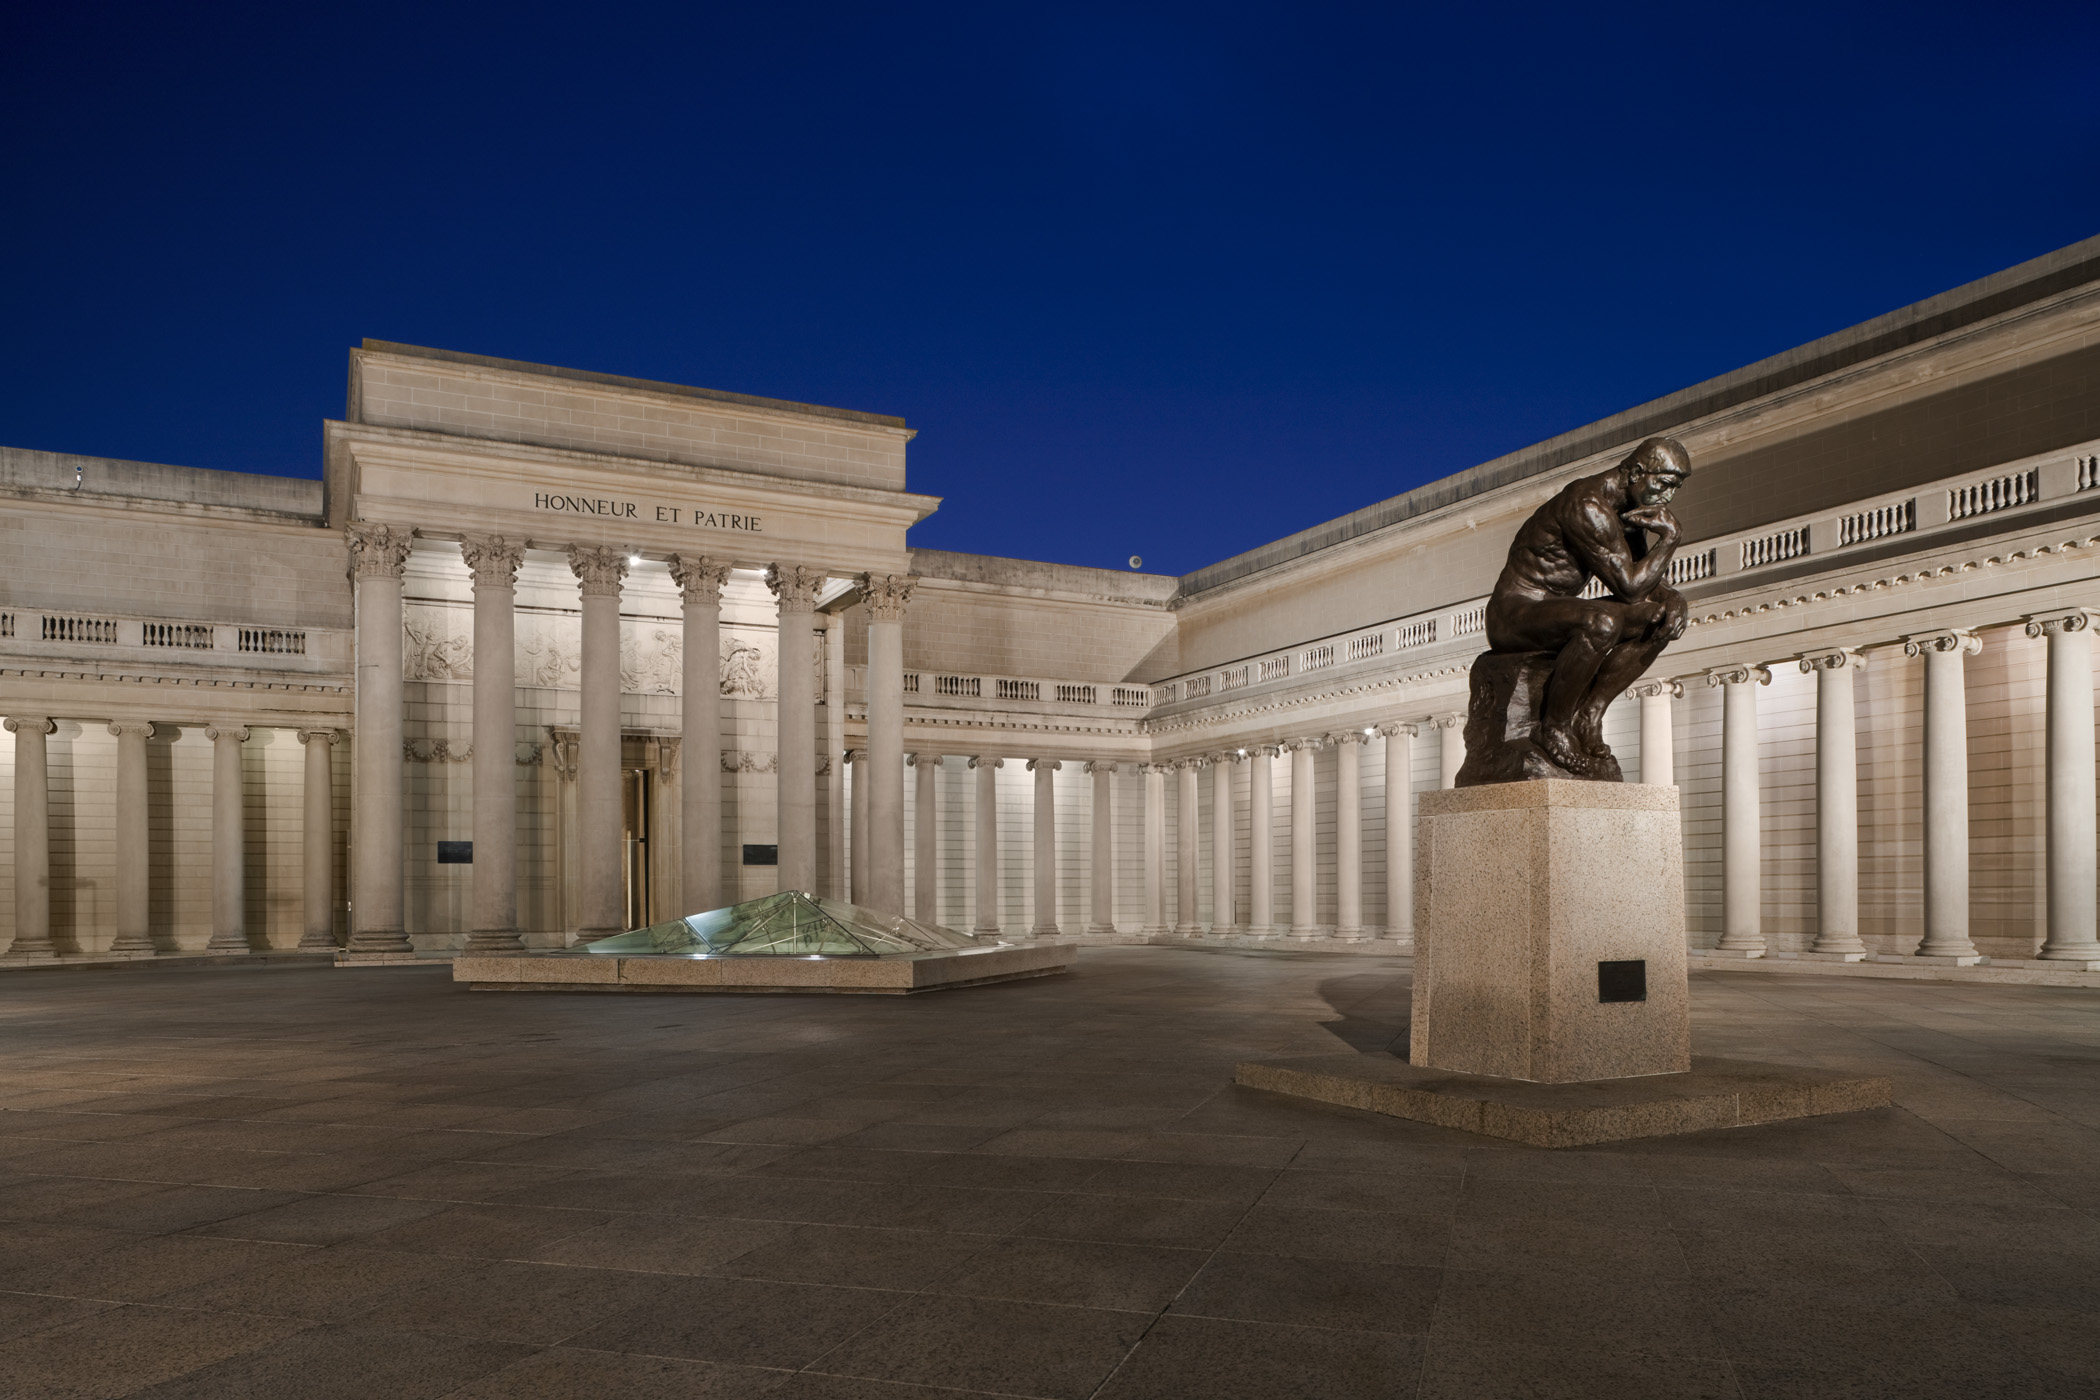 Legion of Honor exterior view